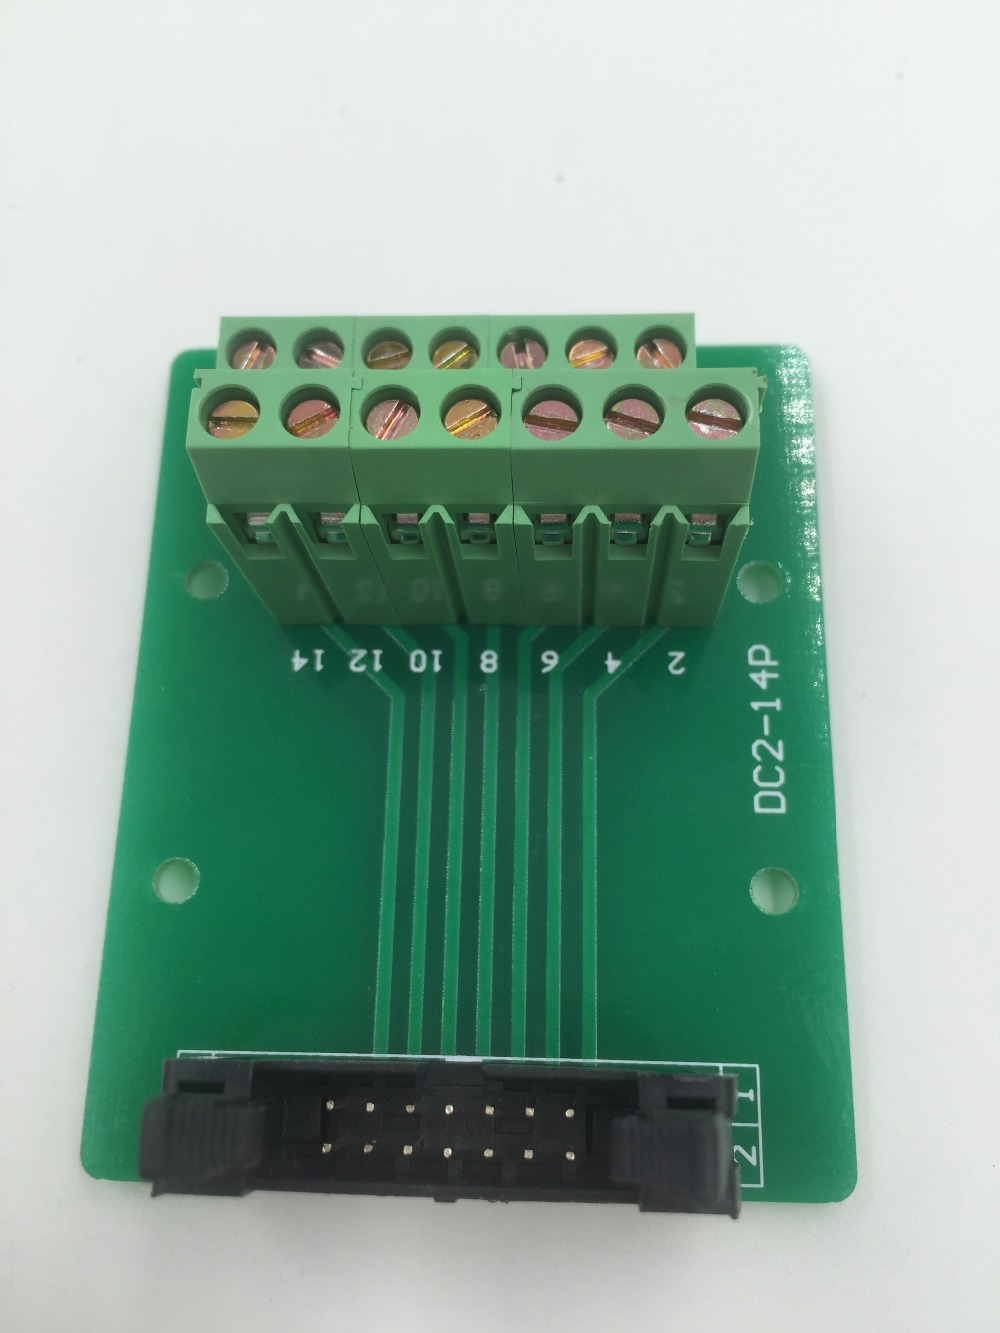 Hot Factory Direct Wholesale IDC14 male plug 14pin port header Terminal Breakout PCB Board block 2 row screw